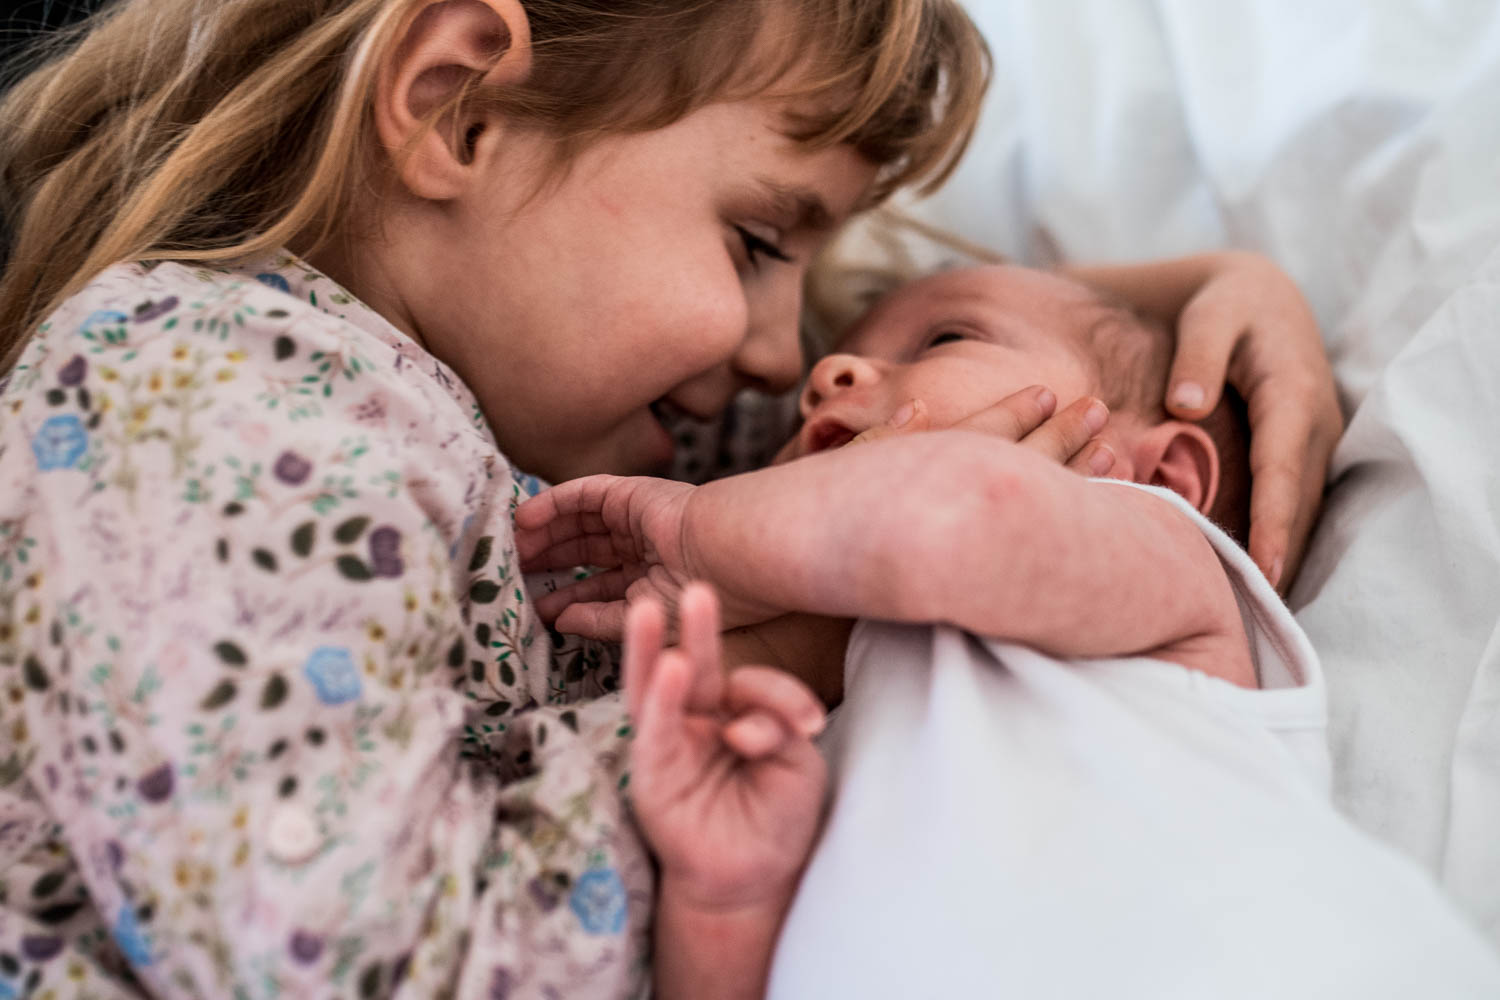 A close up shot of a sister cuddling and kissing her newborn baby brother as they lie on a bed together during this documentary family photography session.